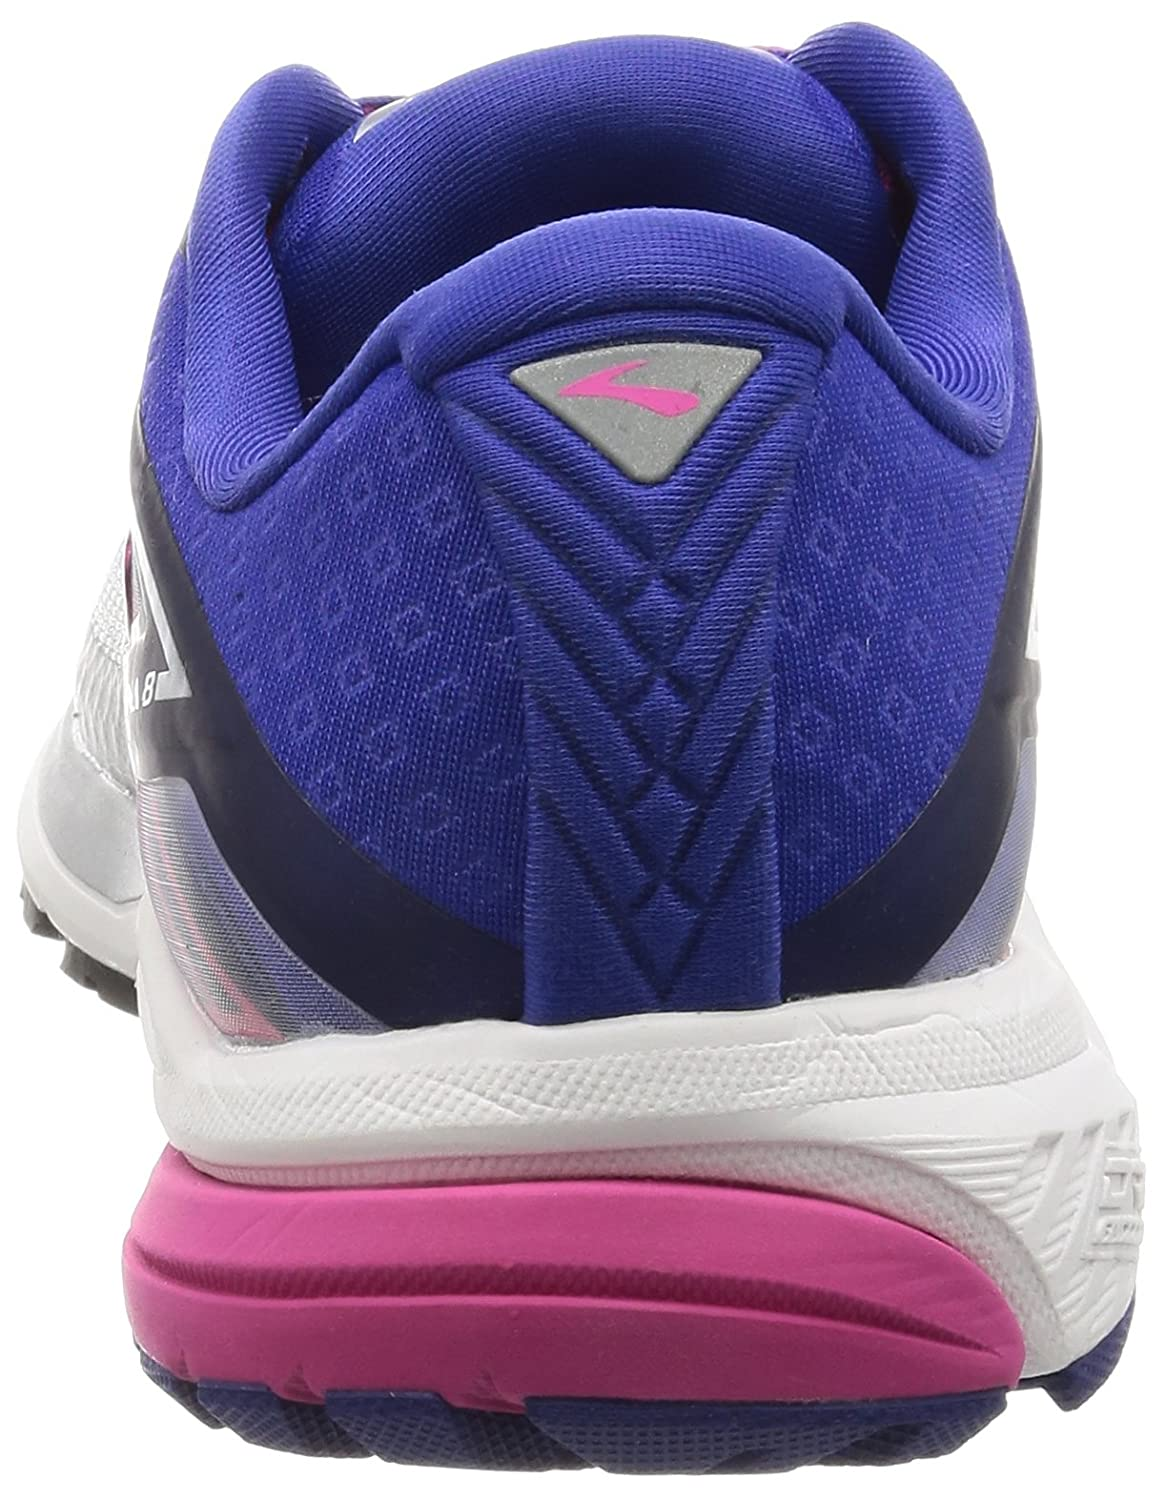 Brooks Women's Ravenna 8 B01GEYZHRG 7.5 B(M) US|Silver/Clematis Blue/Very Berry